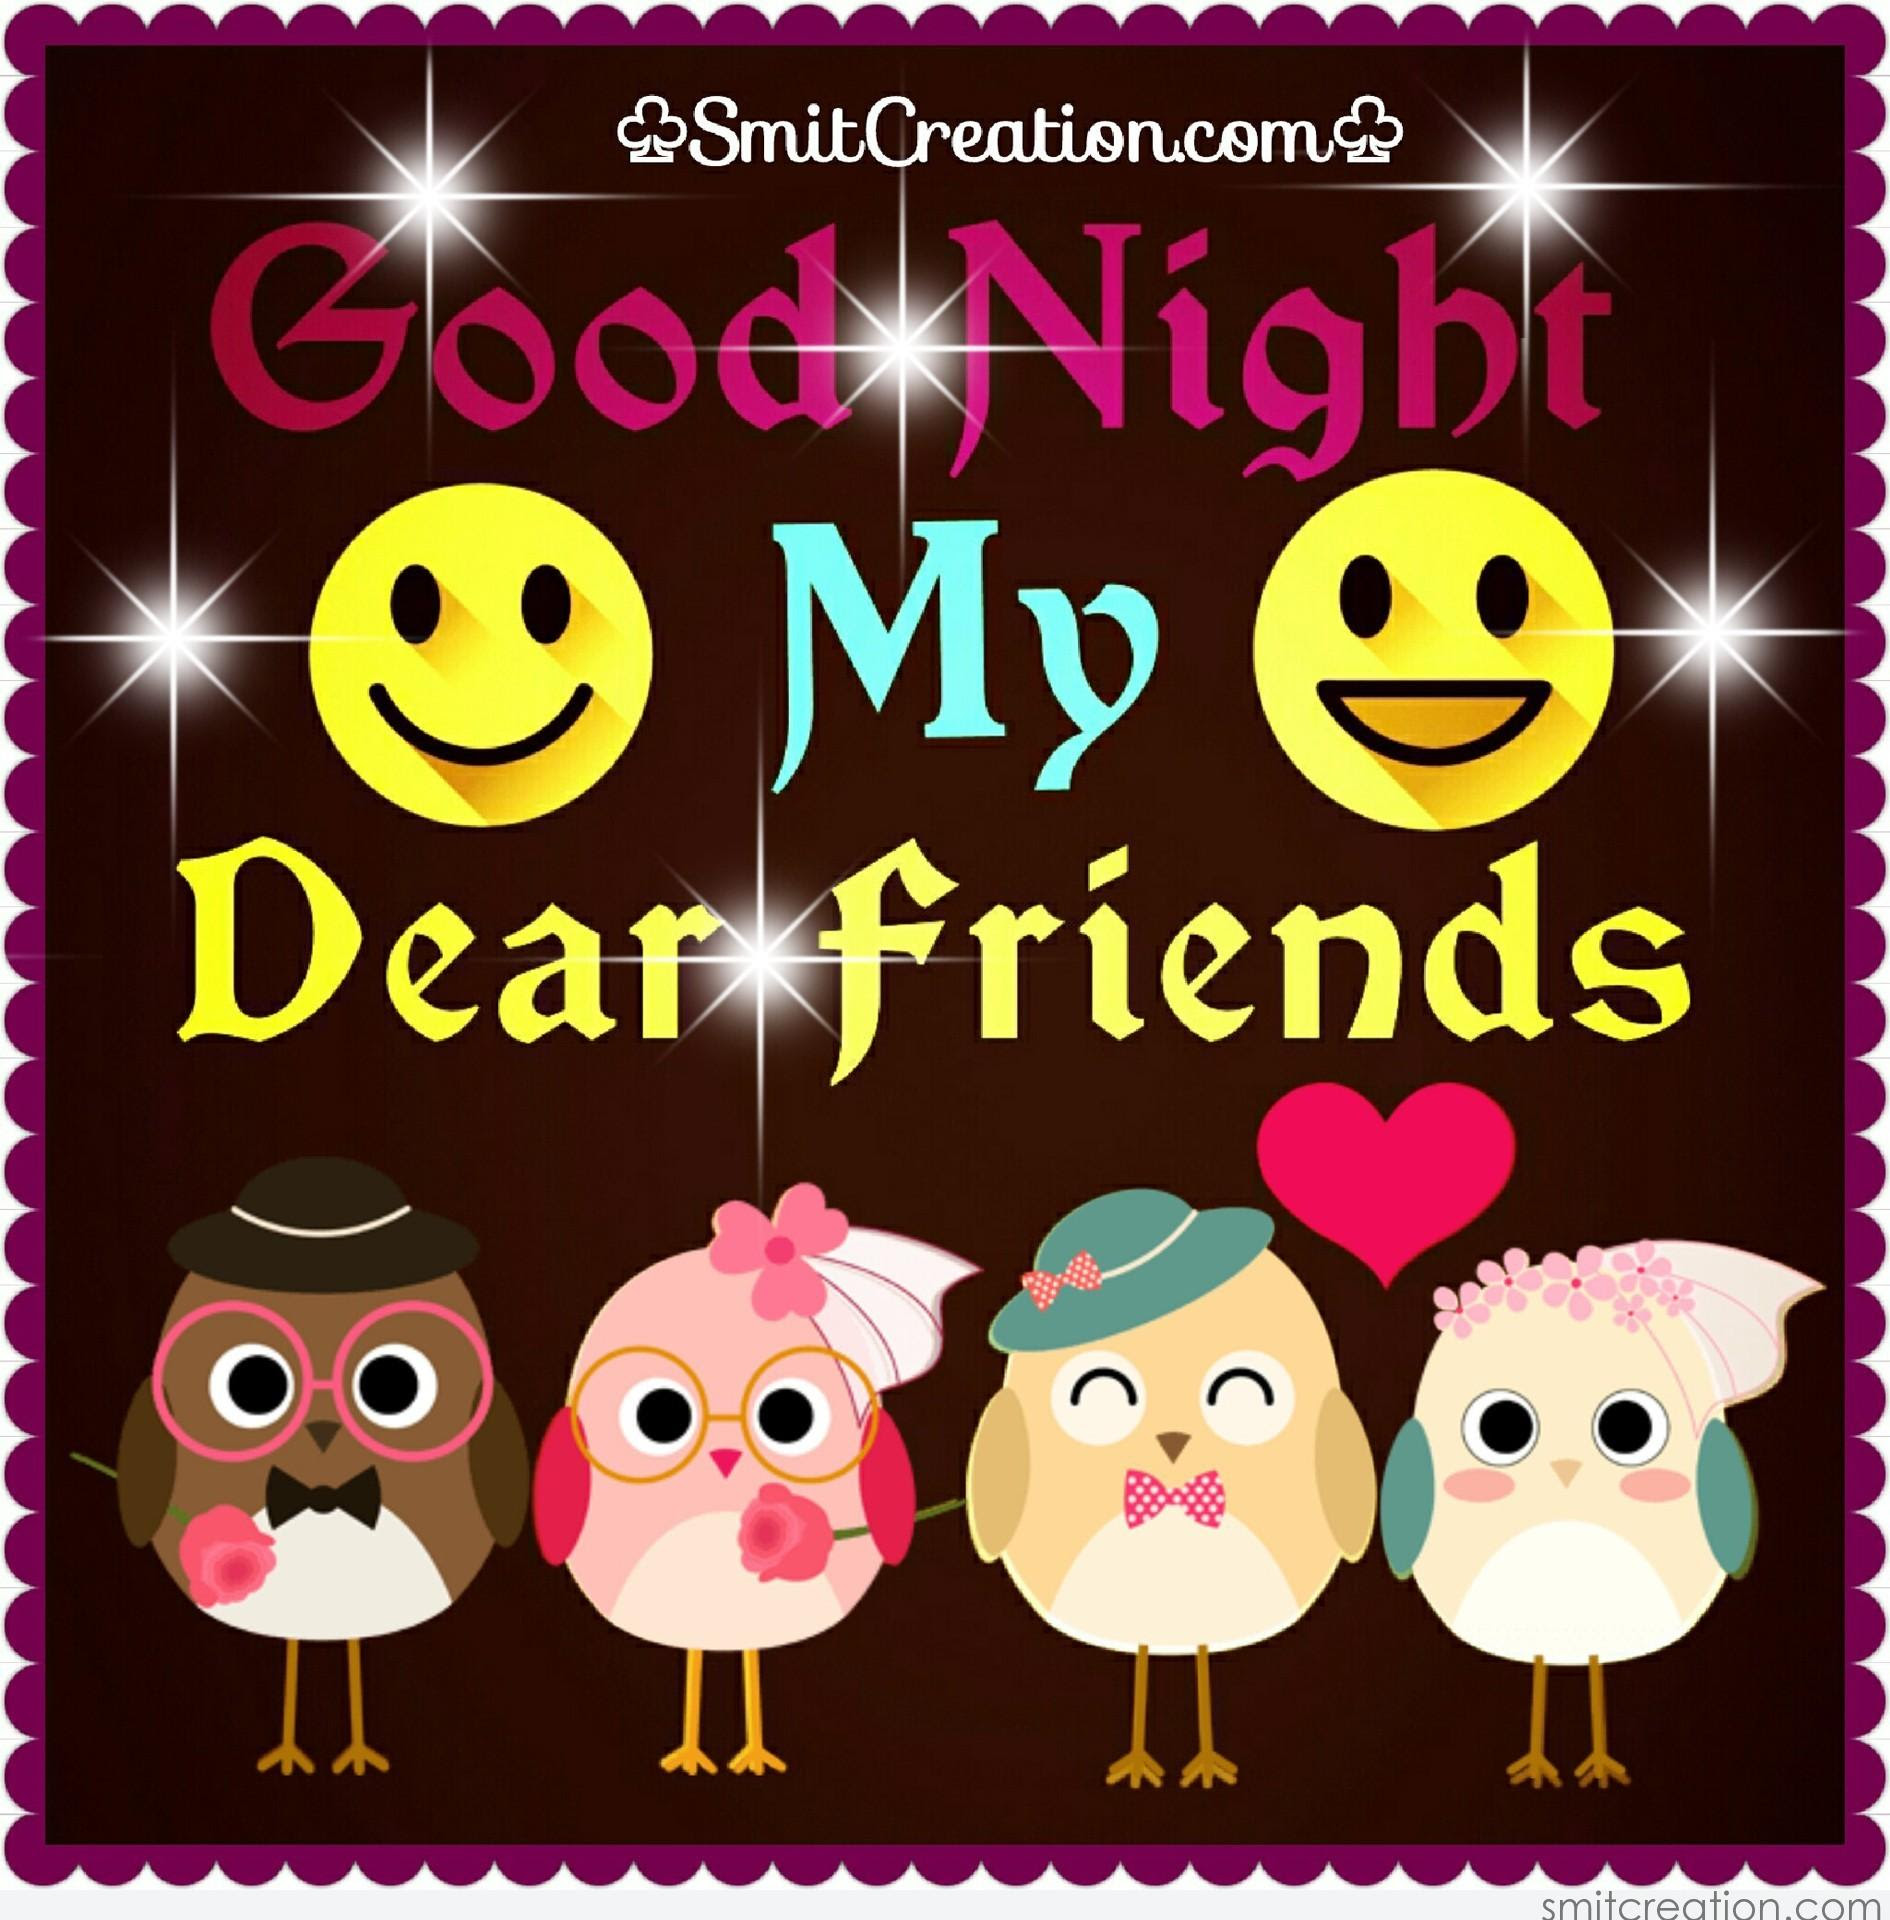 Awesome Good Night Images For Friends Top Colection For Greeting